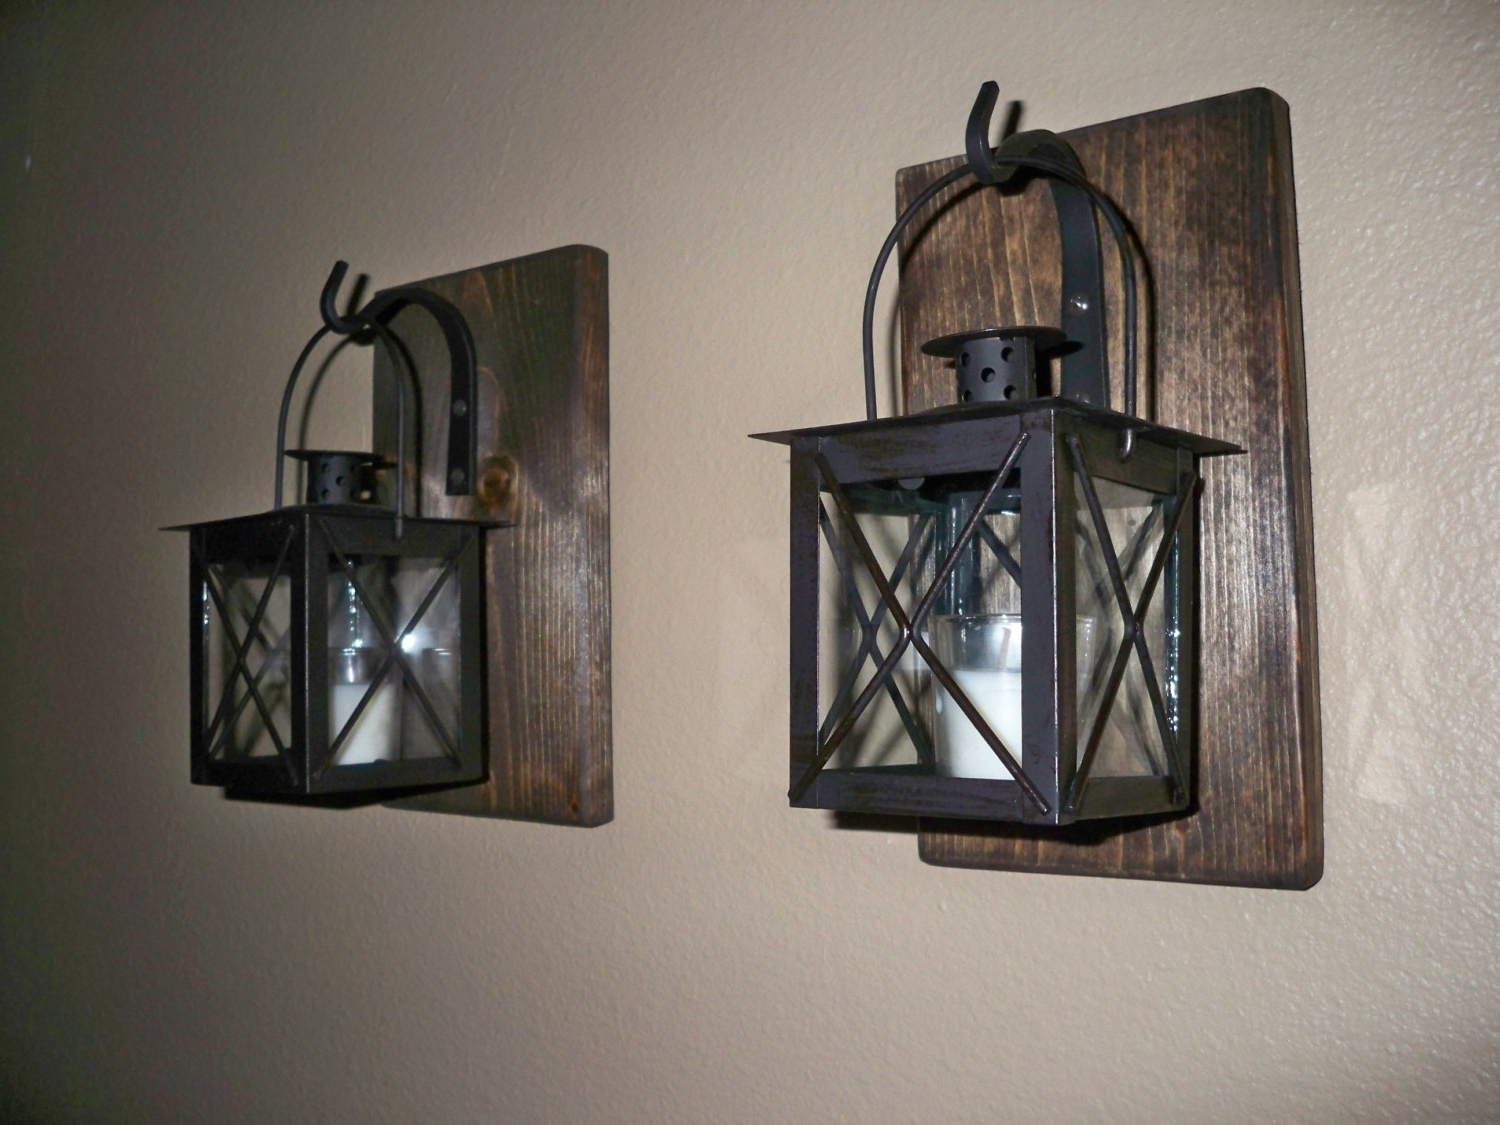 Decorative Outdoor Wall Art Large Wrought Iron Key Decor Sconces Regarding Most Recently Released Etsy Outdoor Lanterns (Gallery 11 of 20)